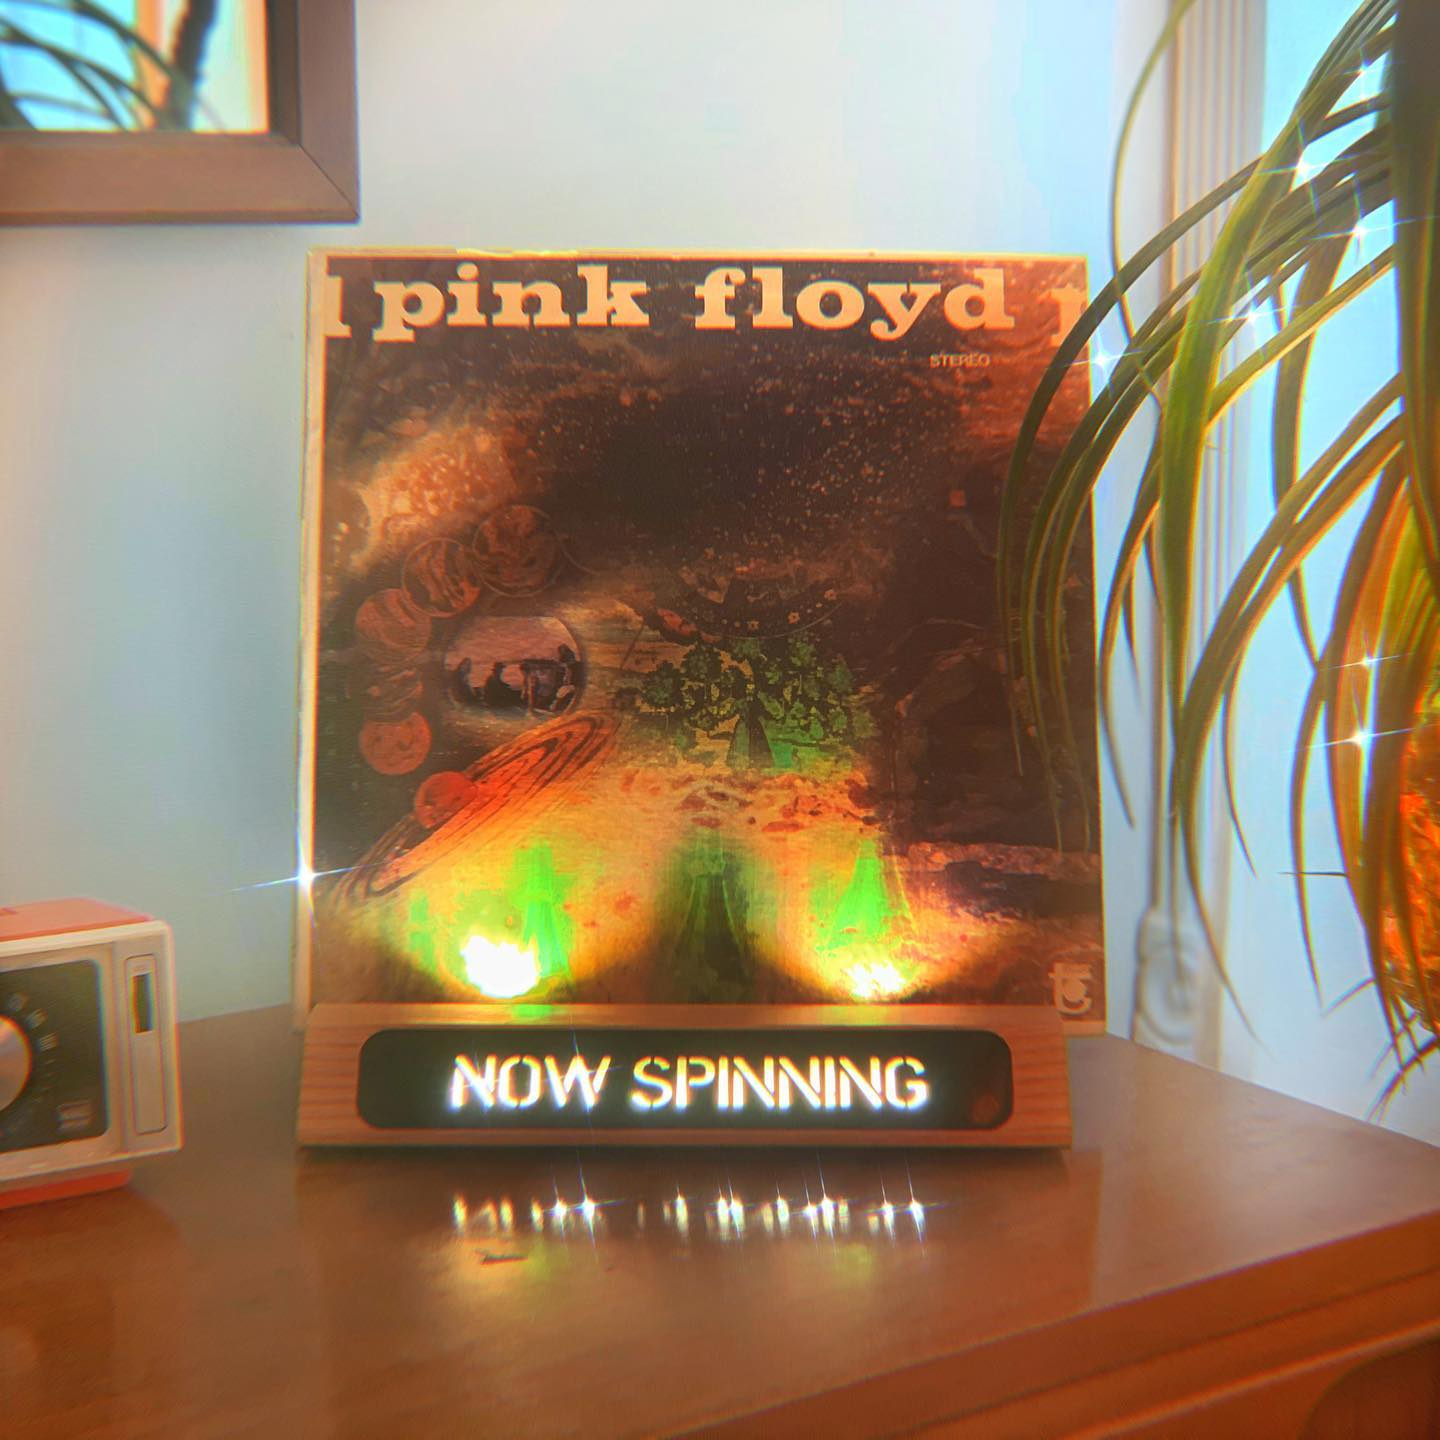 Vinyl-a-Day 15: Pink Floyd - A Saucerful of Secrets (Tower, 1968)